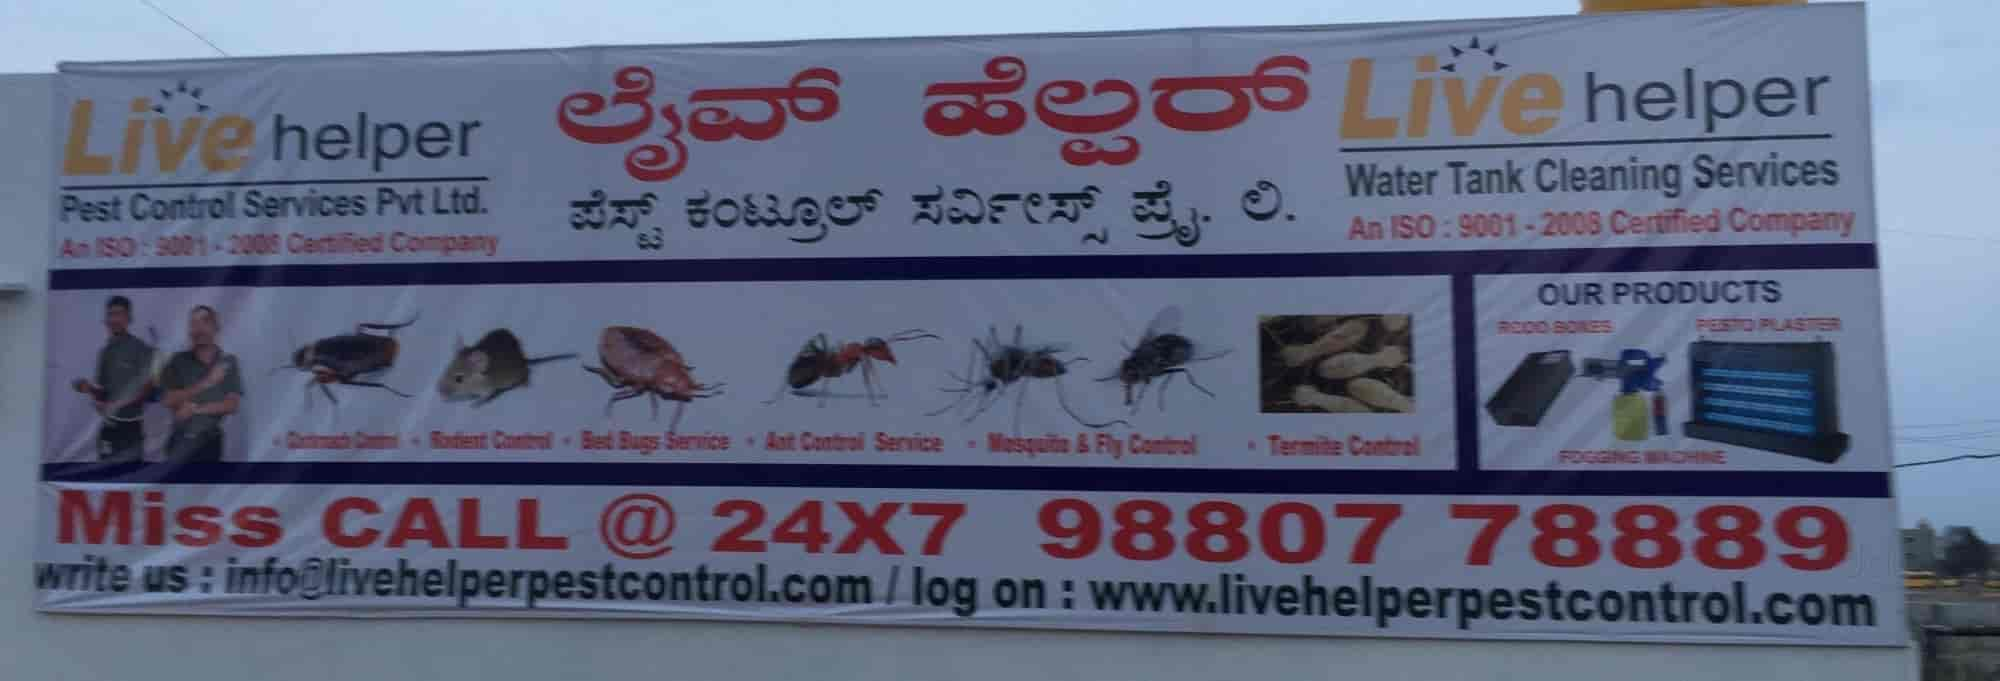 Live Helper Pest Control Services Pvt Ltd, Jayanagar 9th